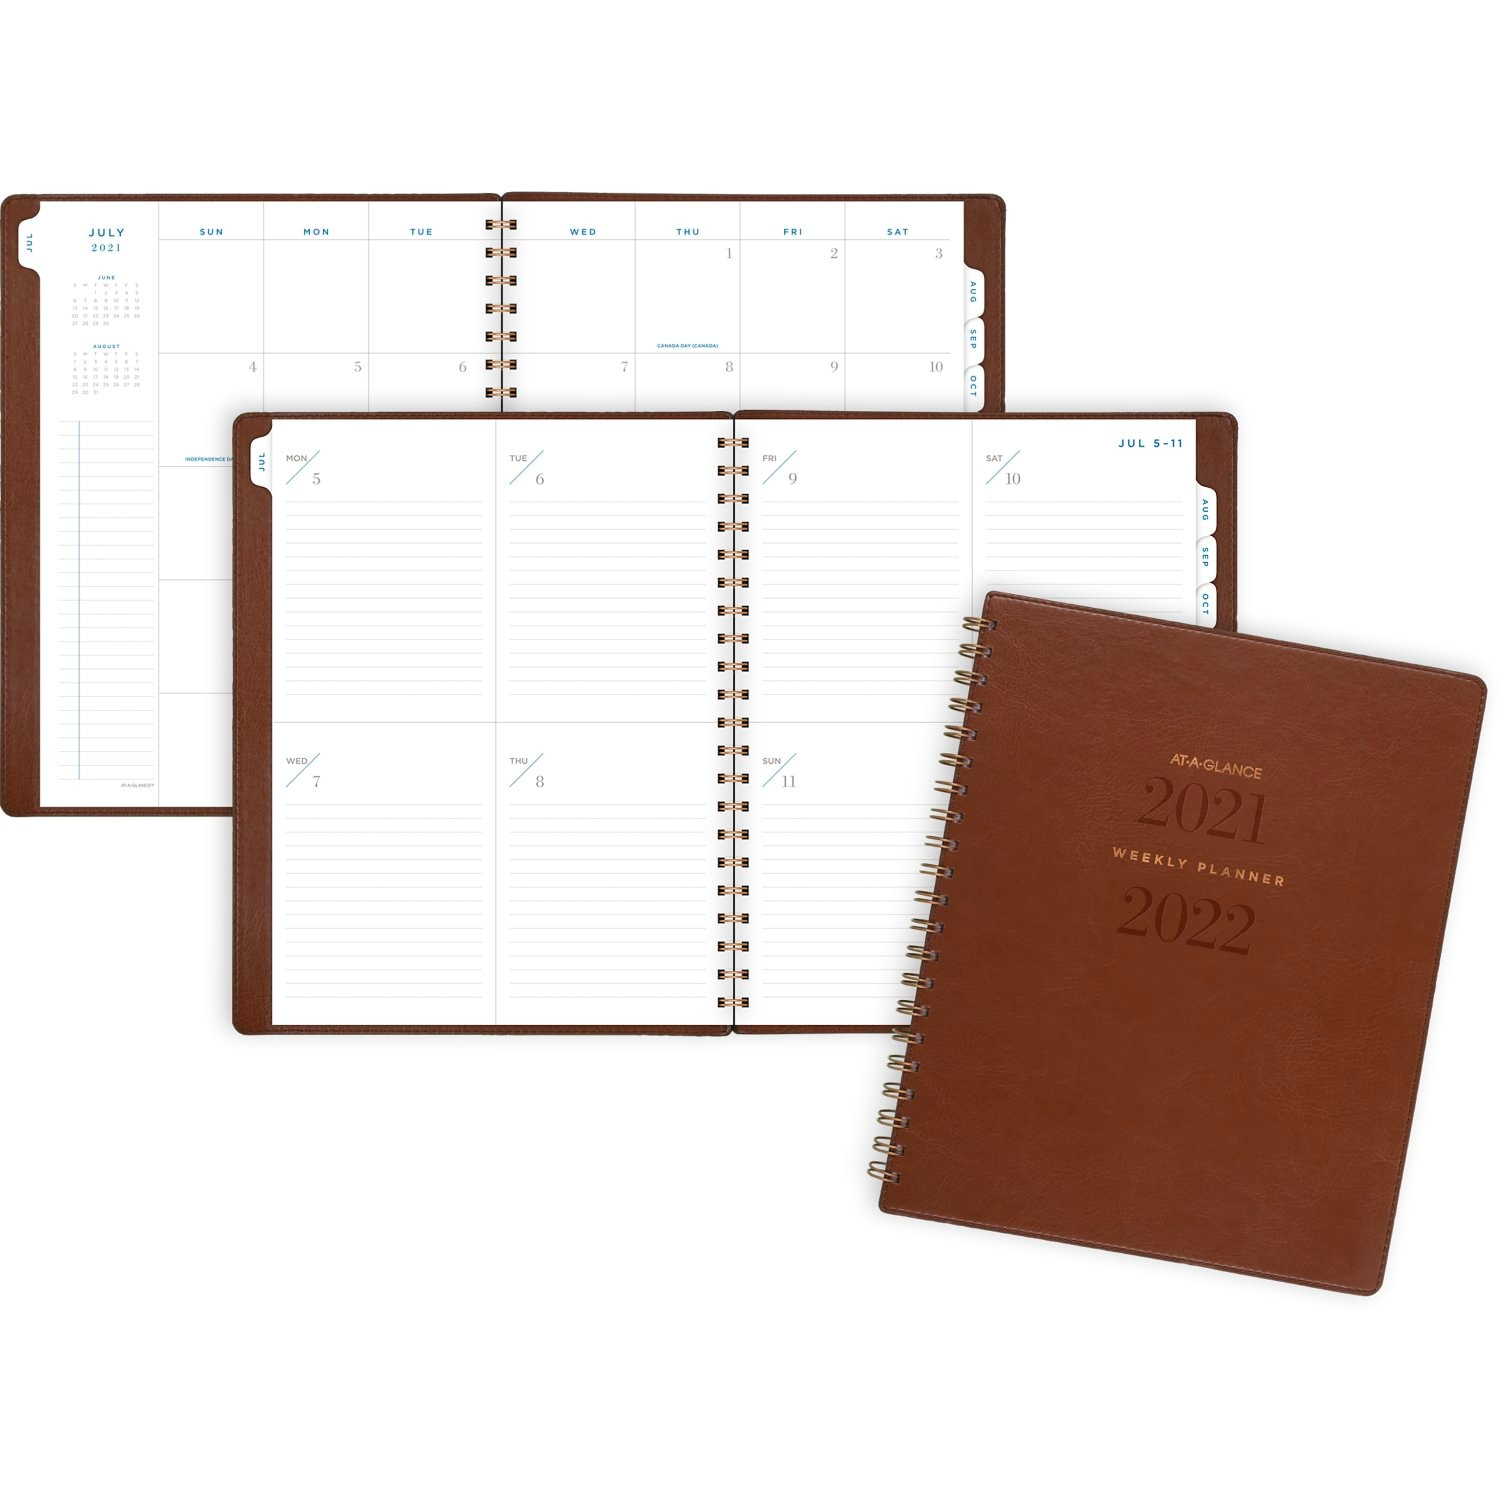 AAG AY 21-22 Brown Planner8x11